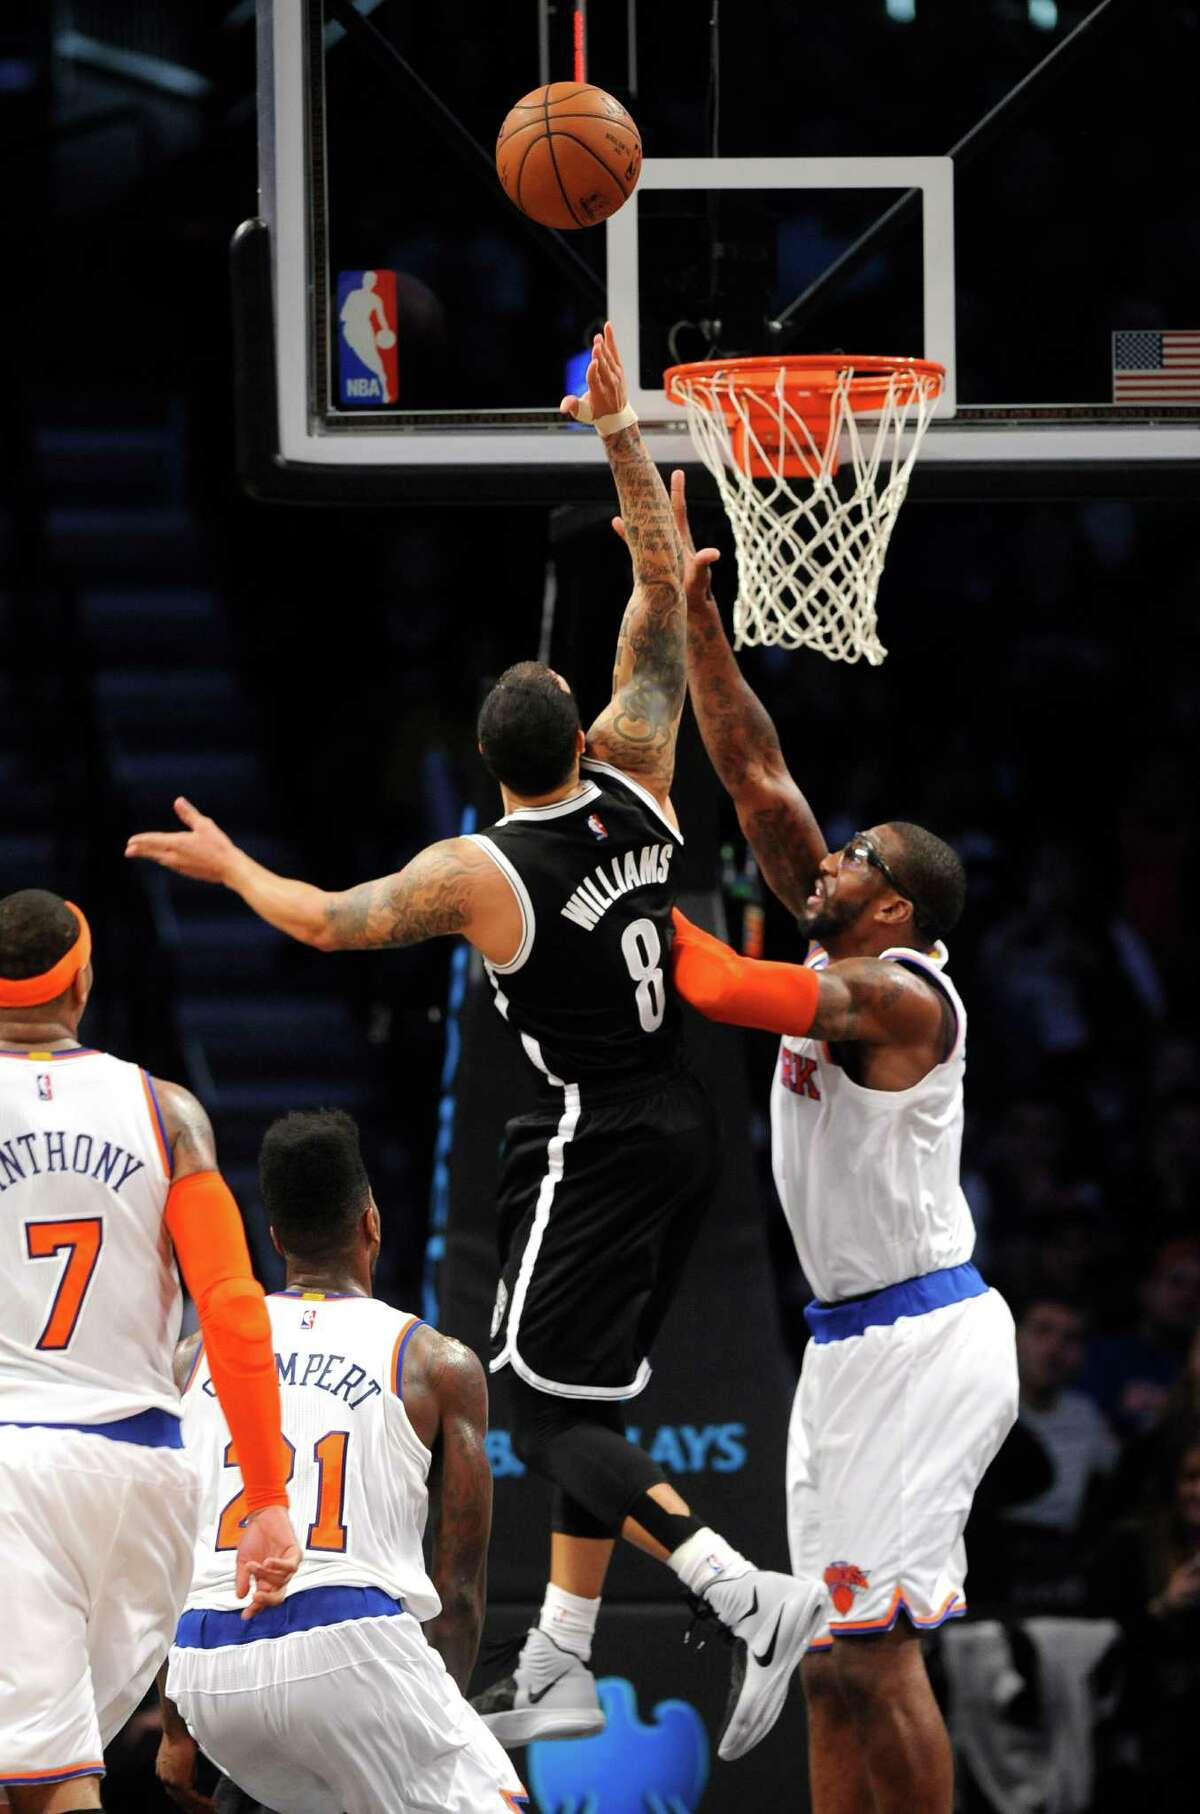 Brooklyn Nets guard Deron Williams (8) shoots a basket over New York Knicks forward Amare Stoudemire (1) during the second half of an NBA basketball game on Friday, Nov. 7, 2014, at Barclays Center in New York. The Nets won 110-99. (AP Photo/Kathy Kmonicek) ORG XMIT: NYKK109